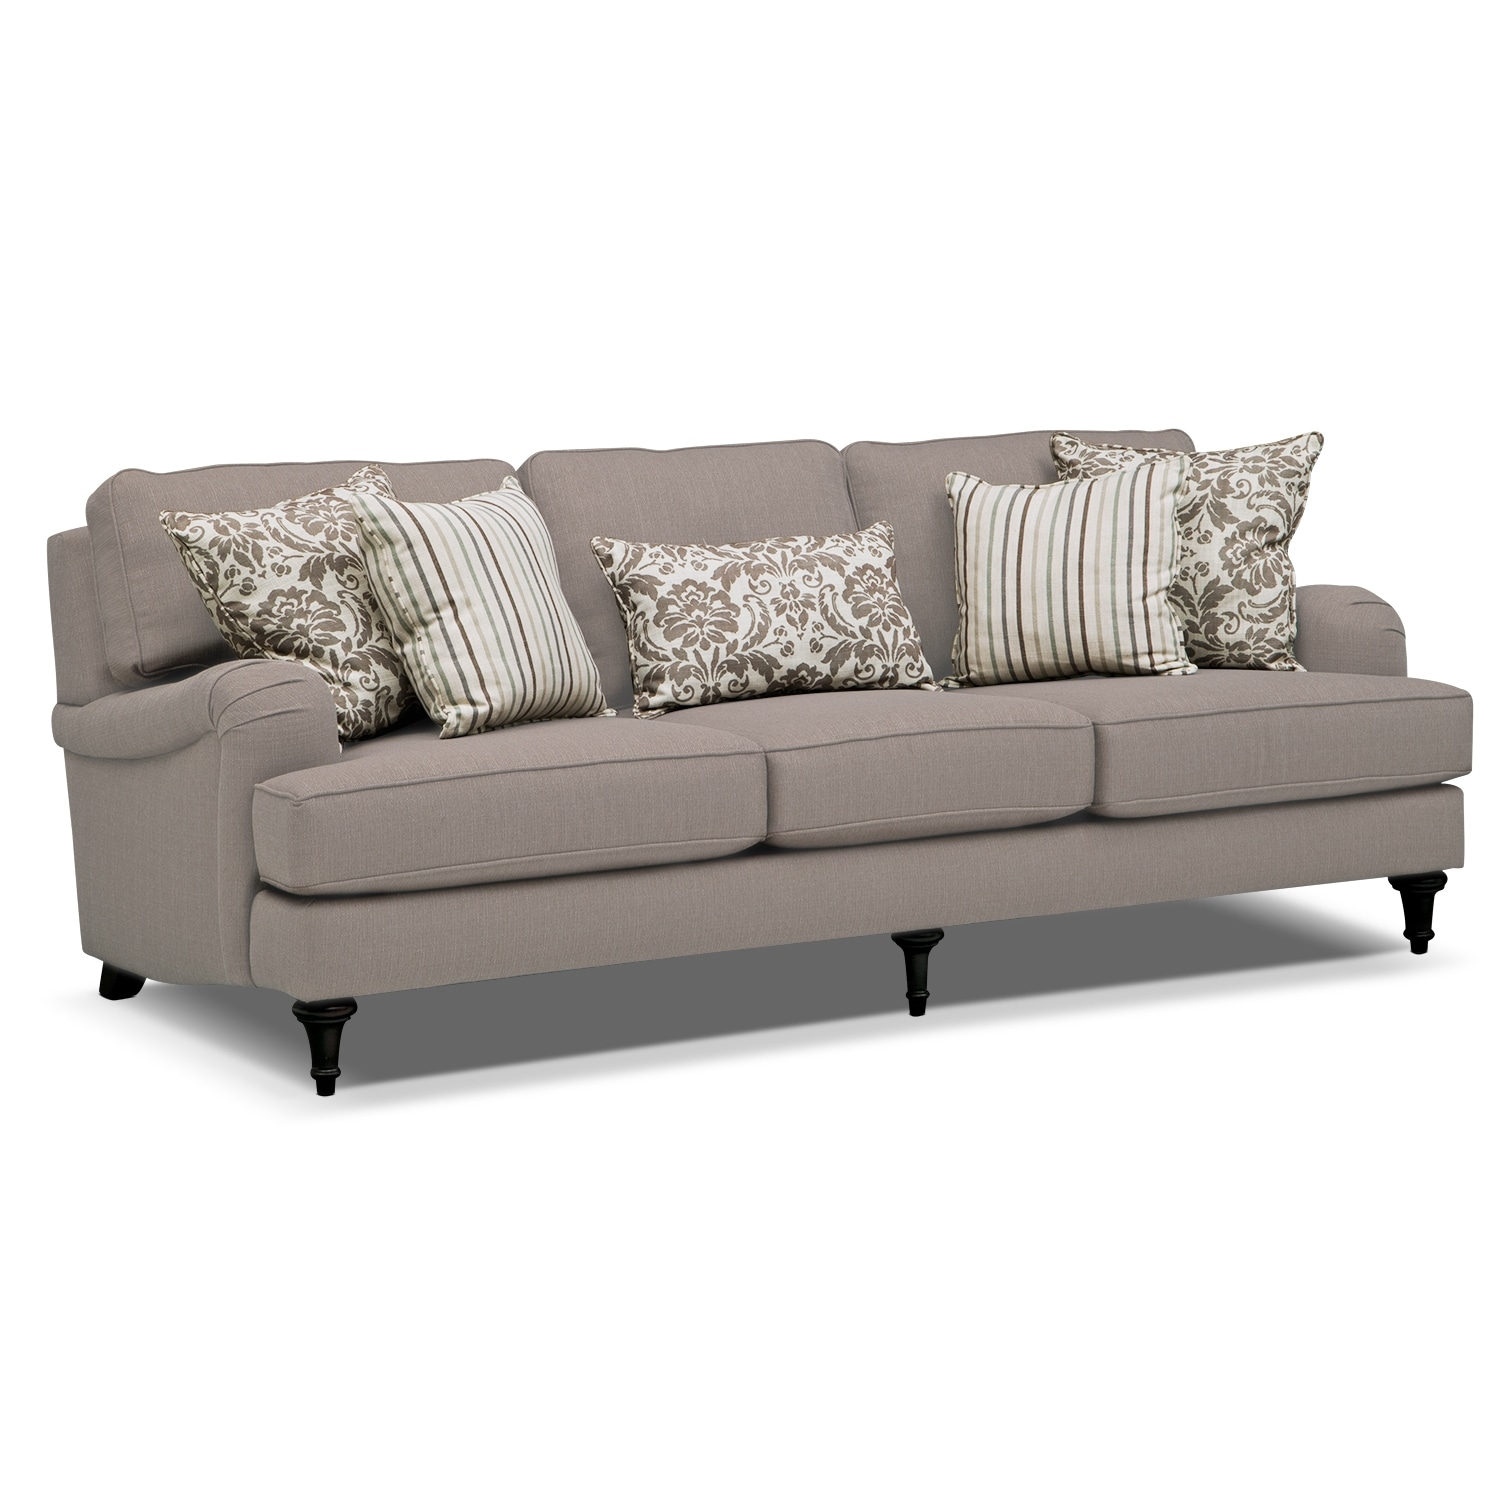 candice sofa gray american signature furniture. Black Bedroom Furniture Sets. Home Design Ideas